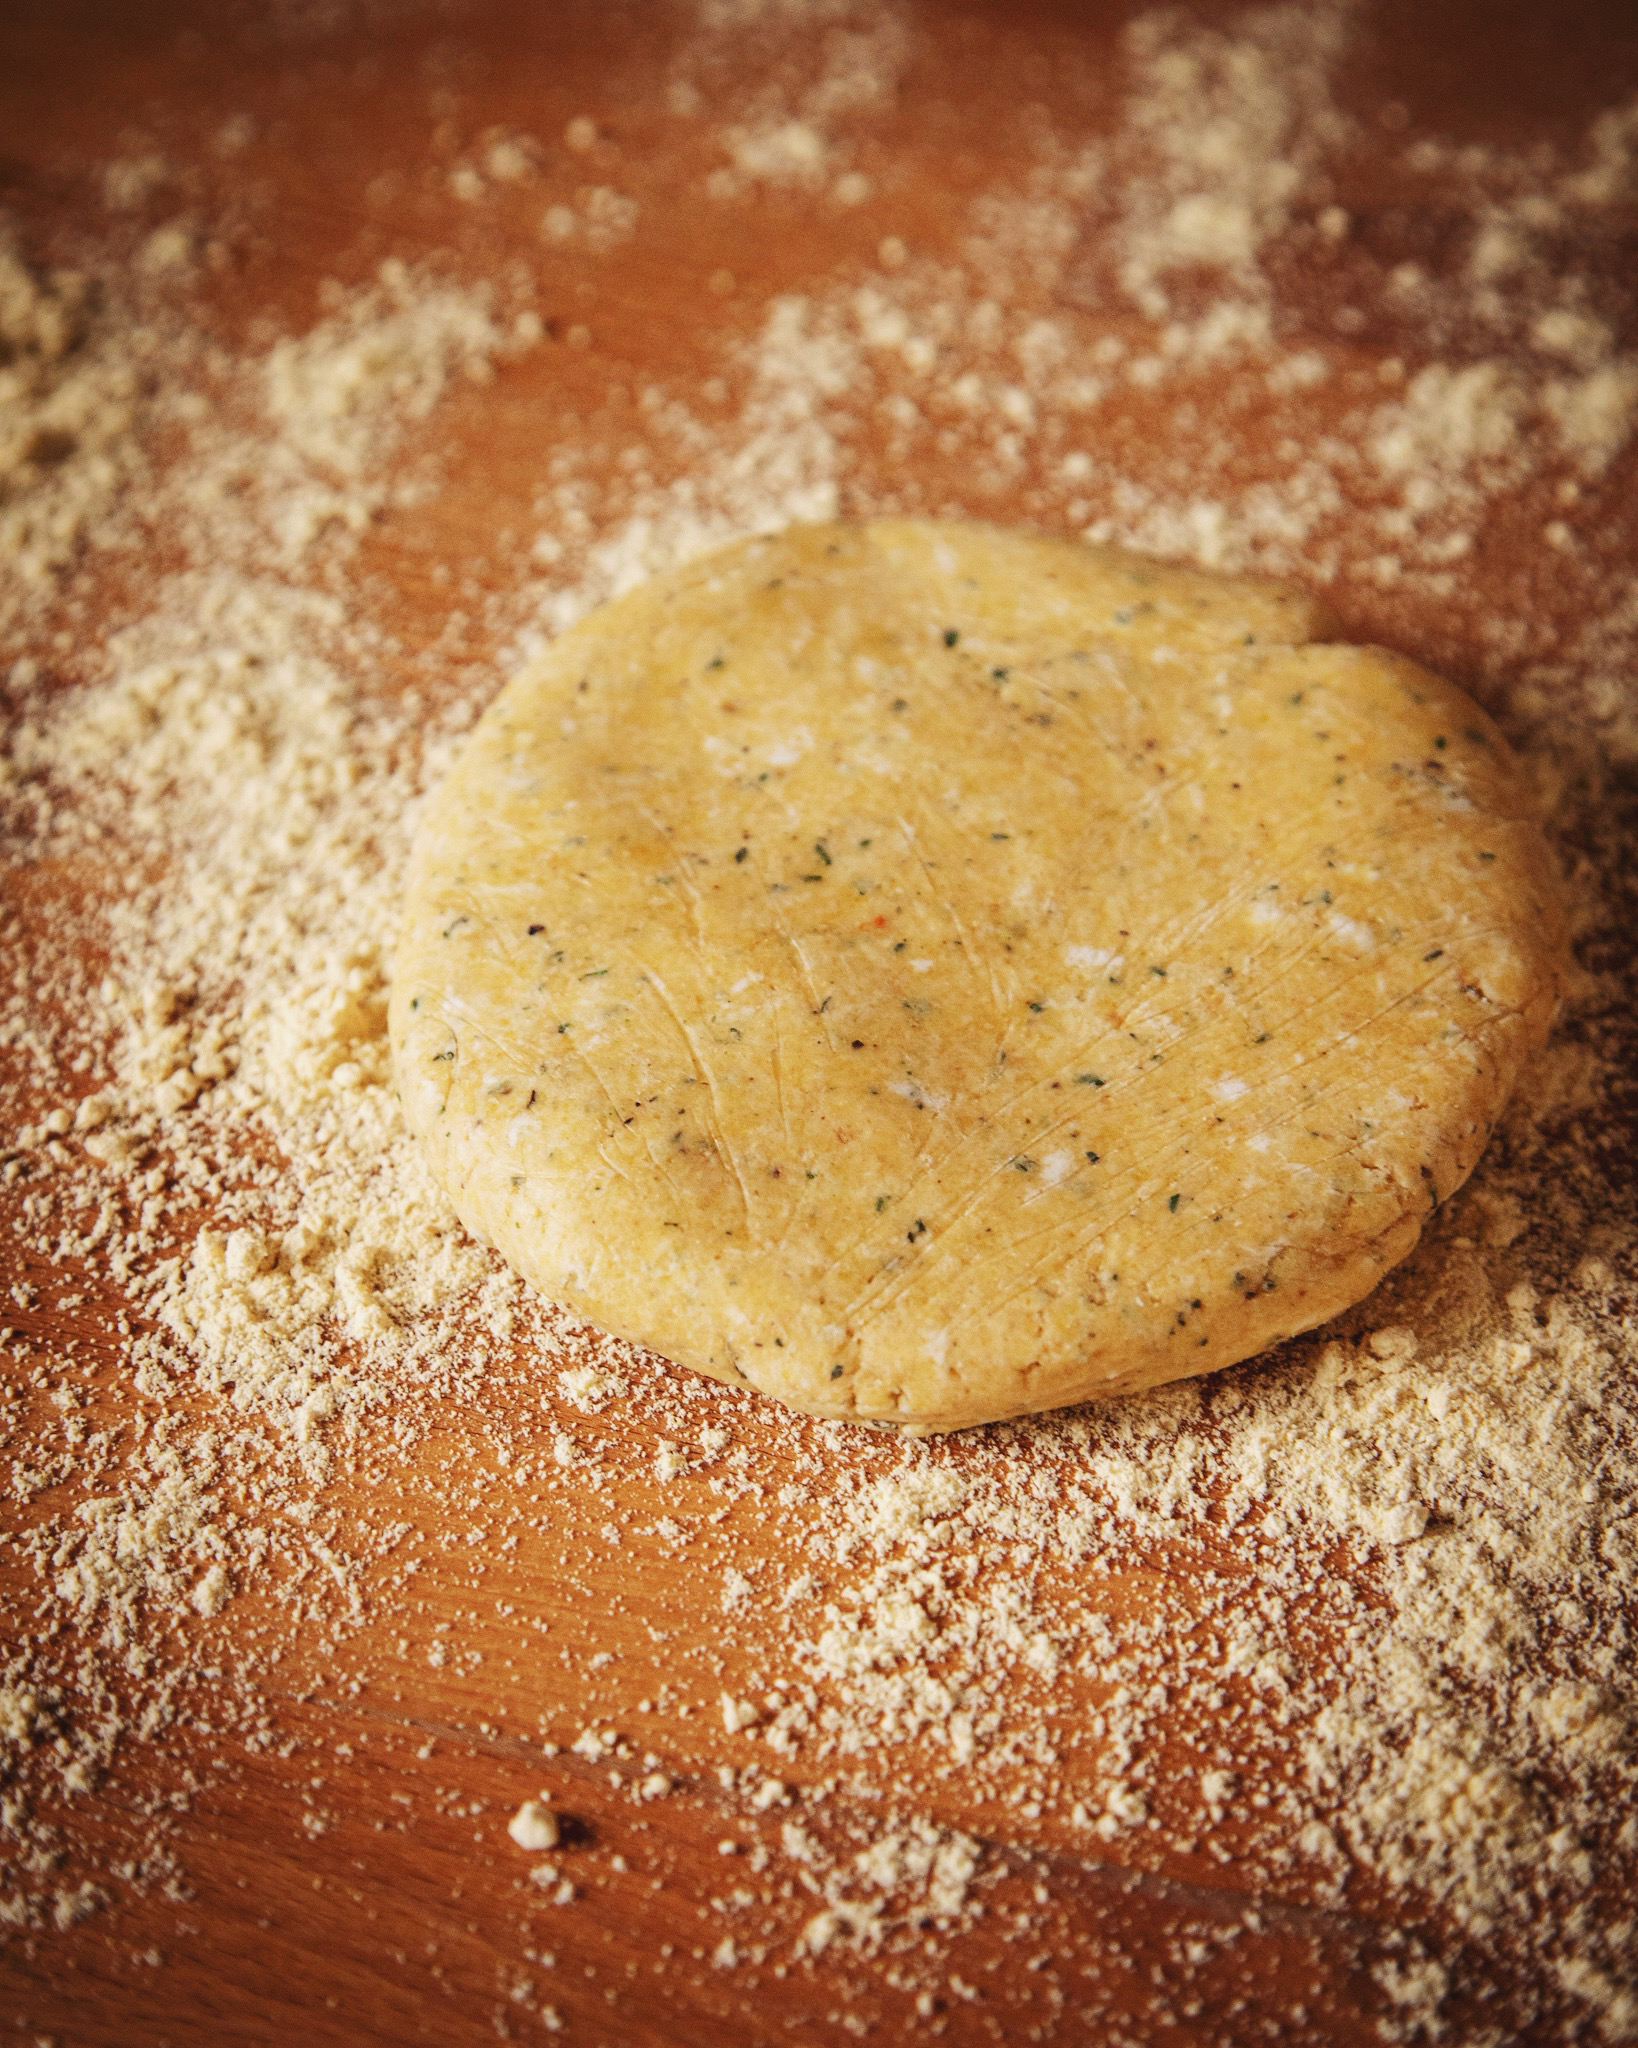 A disc of dough is out on the counter with a dusting of flour.